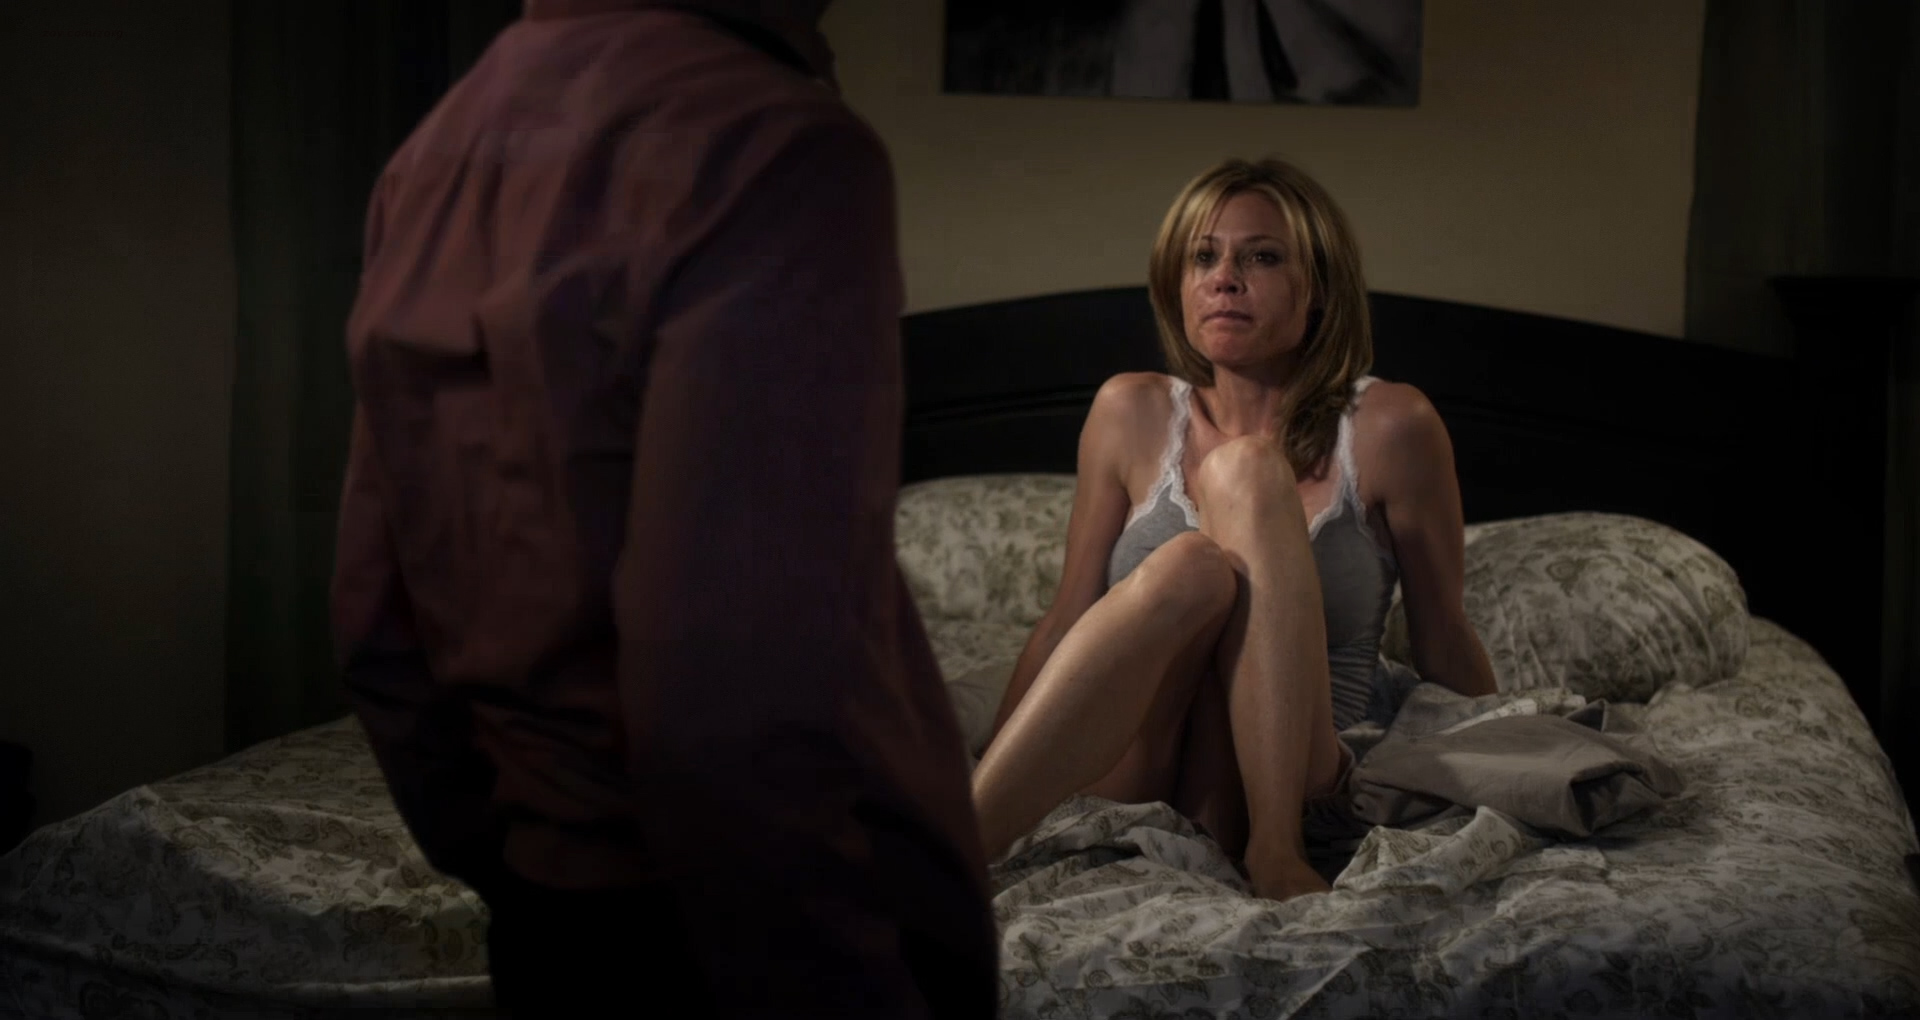 Julie bowen sex scenes